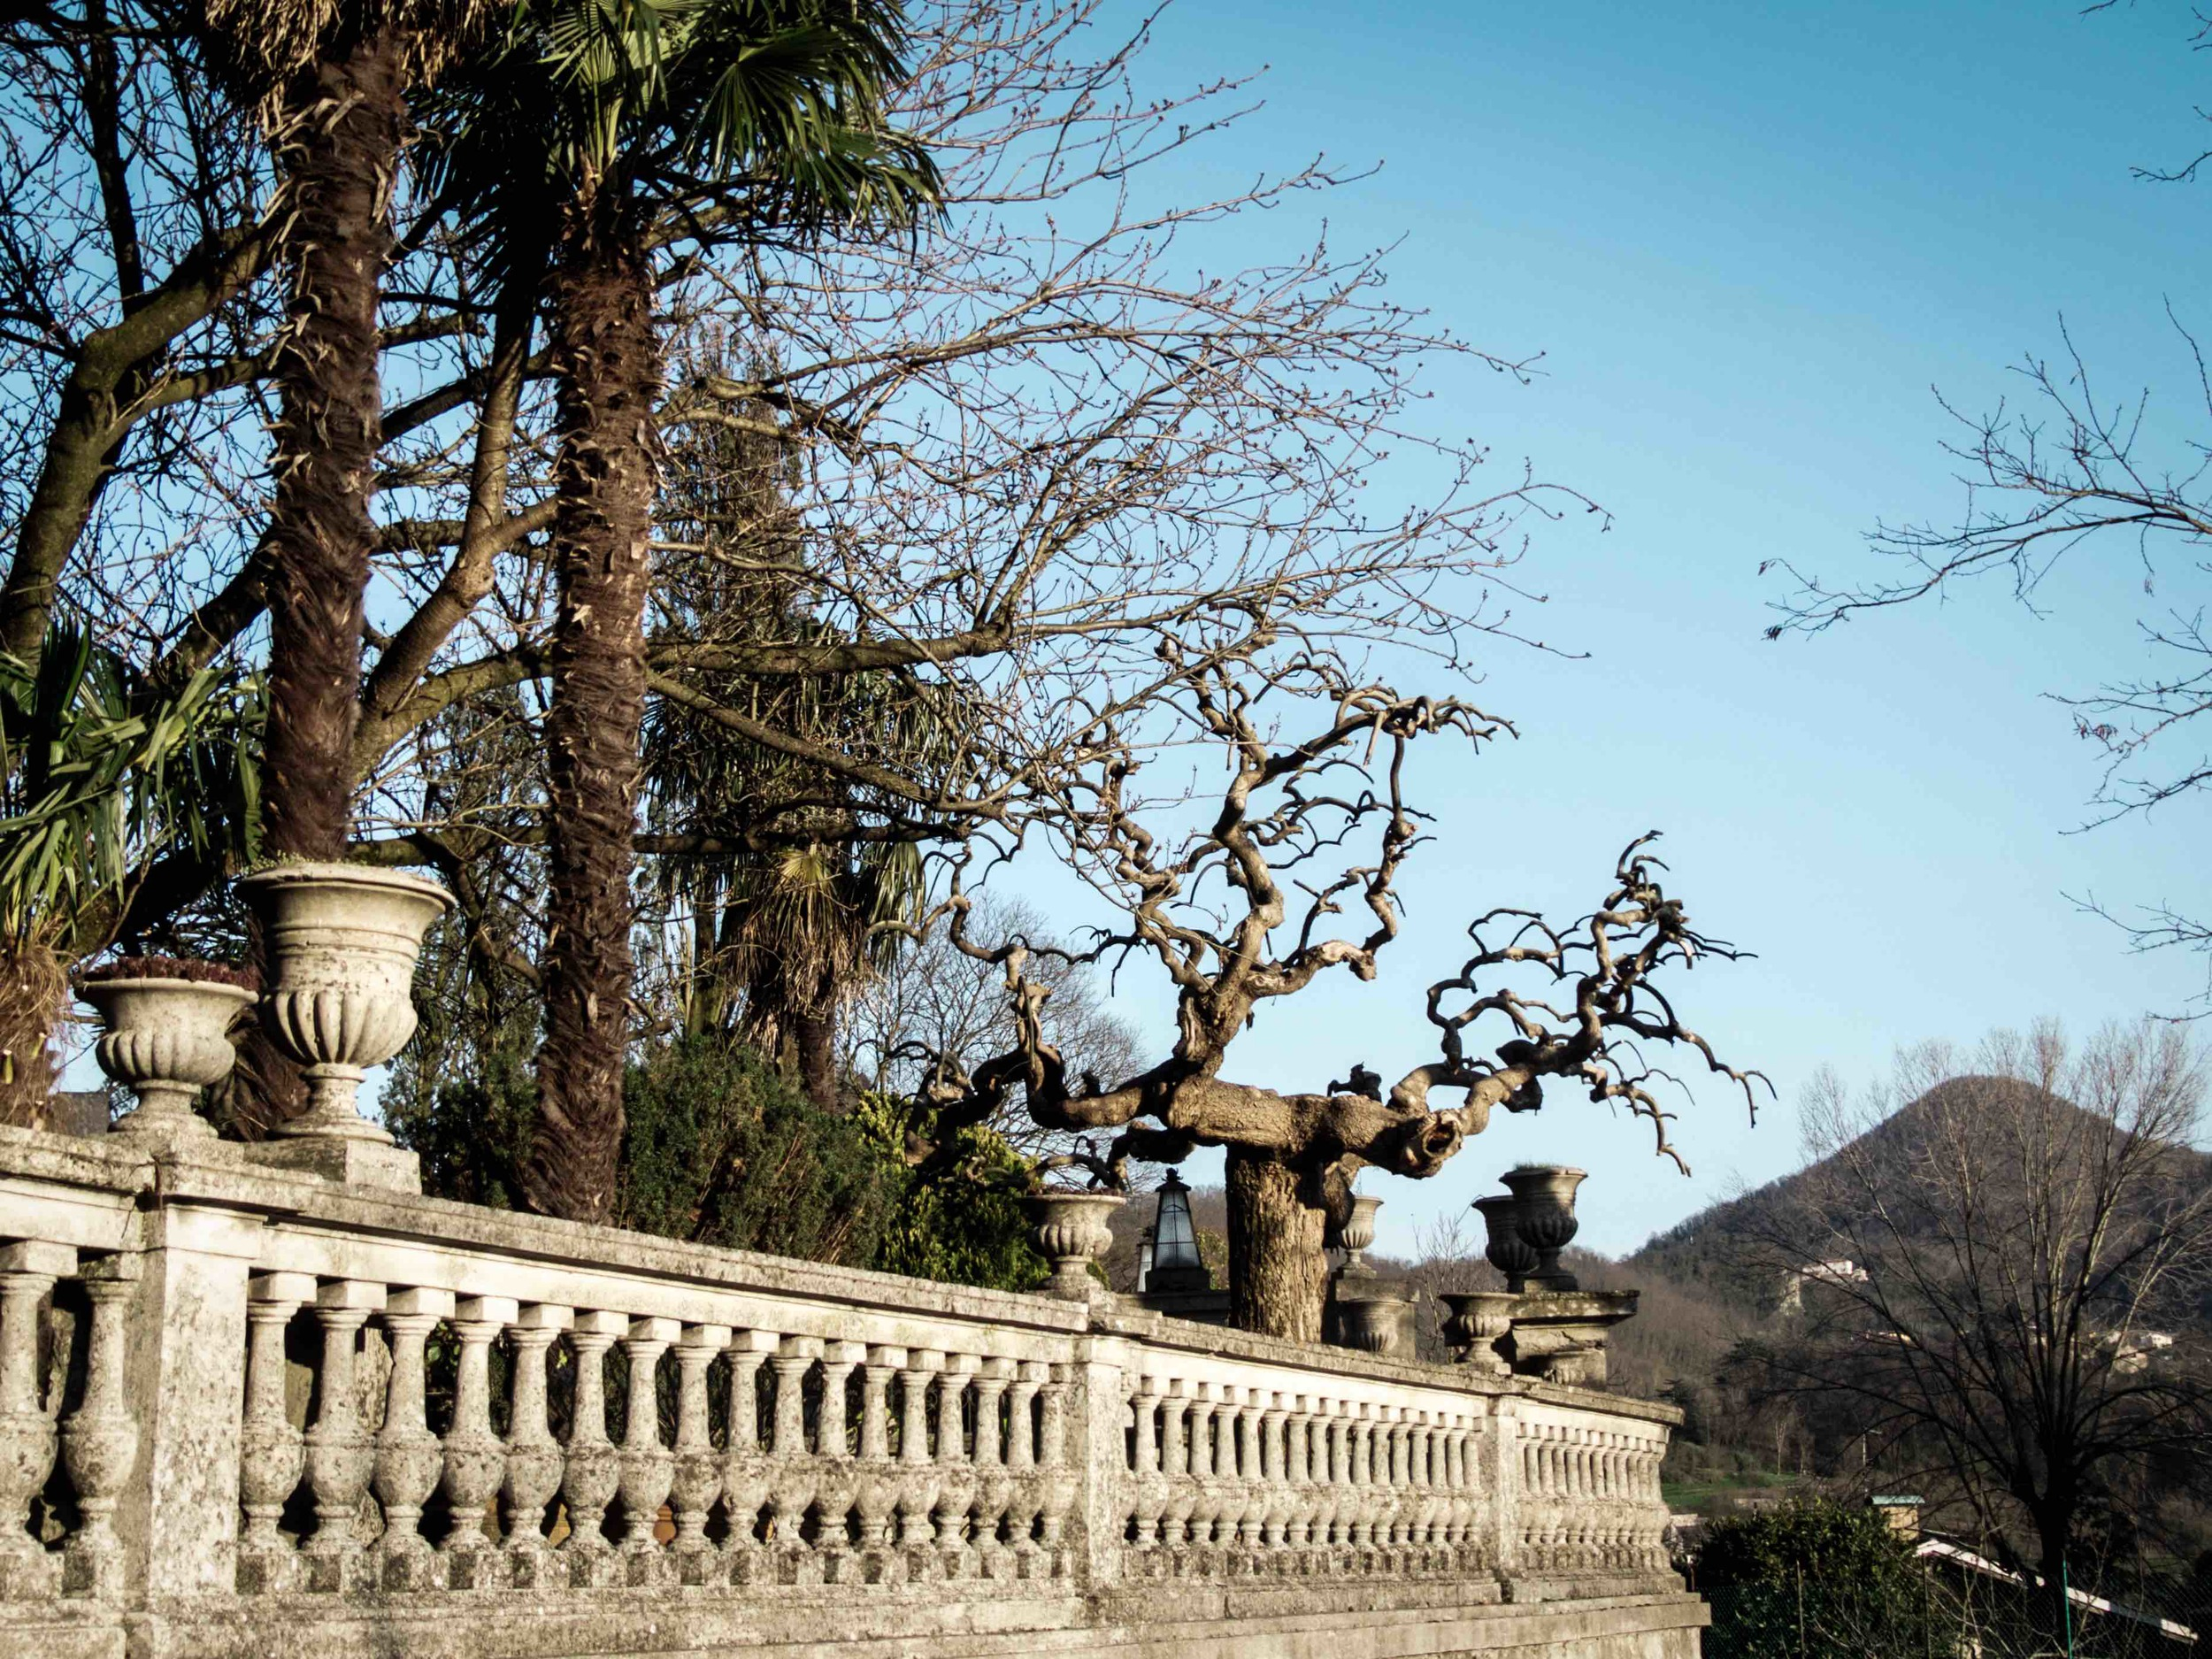 Marco told me that Veneto used to be the wealthiest region of Italy. This is why we see so many old villas around. Can you imagine what it was like a hundred years ago?